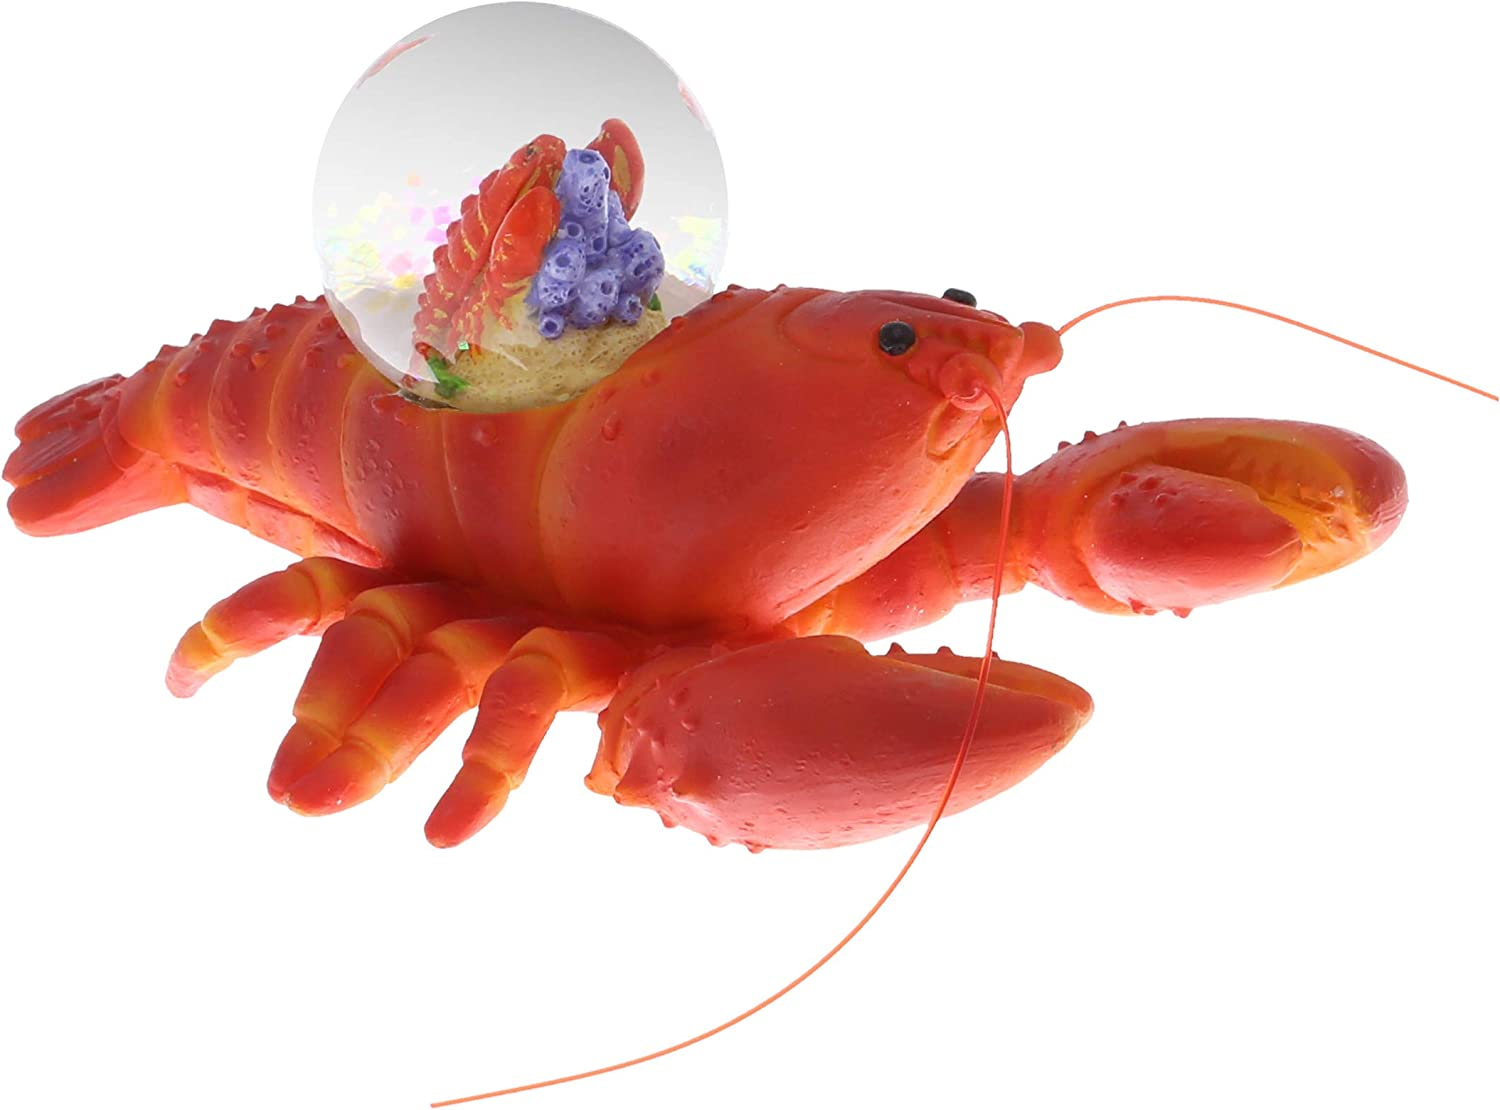 CoTa Global Animal Glitter Snow Globe Glass Collectibles, Cool Land & Ocean Decor Wildlife Figurines Snow Globes Centerpiece, Nautical Water Globes For Home Decor & Shelf Decorations 45mm - Lobster